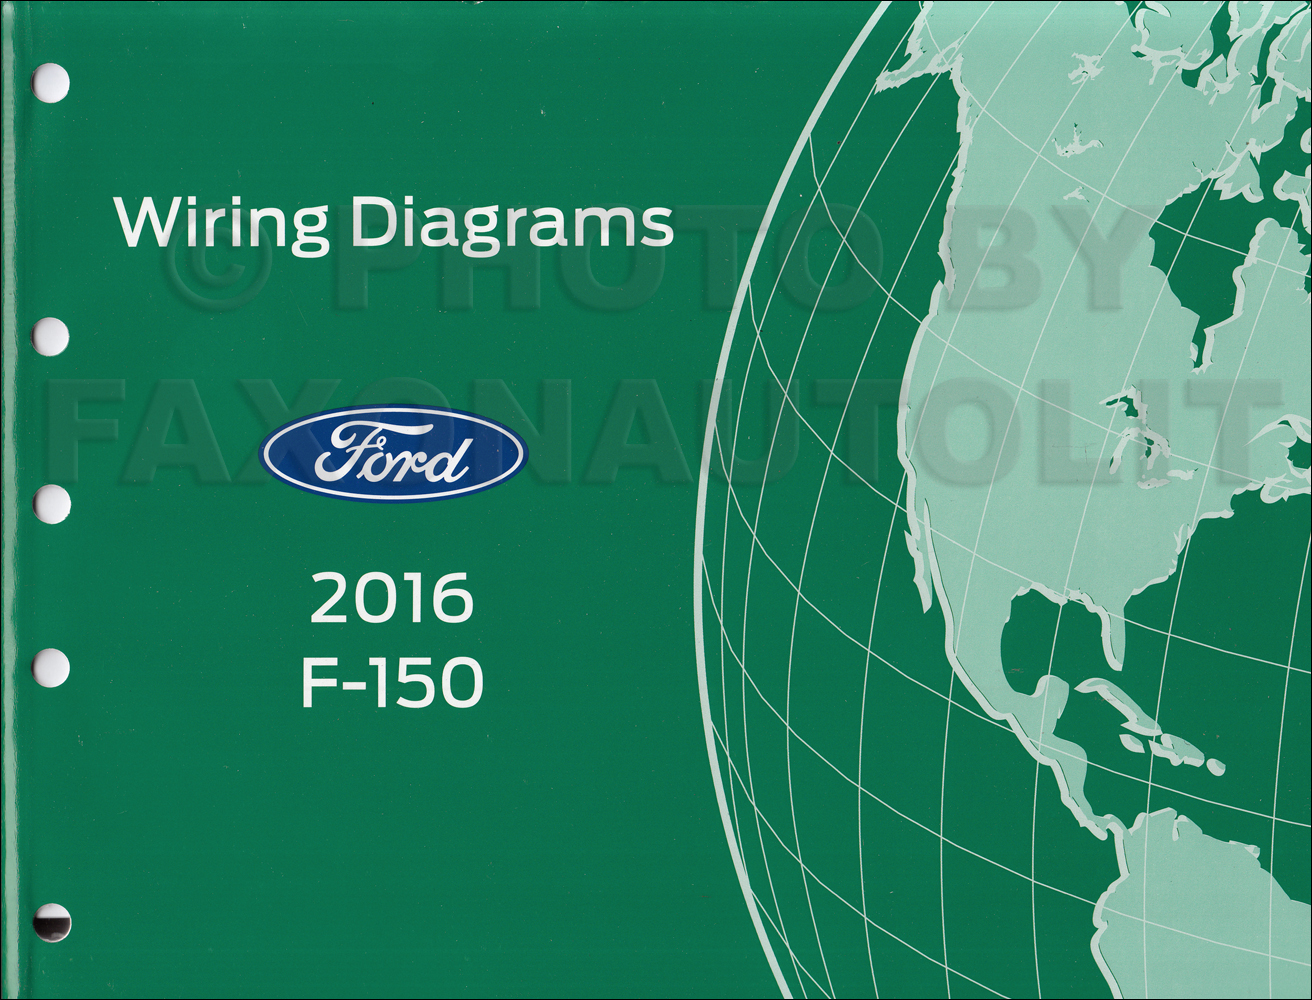 2016 Ford F-150 Wiring Diagram Manual Original Ford F Wiring Diagrams on 1998 ford windstar wiring diagram, ford radio wiring diagram, ford explorer wiring diagram, ford radio wiring color code, ford bronco wiring diagram, ford e 350 wiring diagrams, ford mustang wiring diagram, ford ranger wiring diagram, ford e250 wiring diagram, ford car radio wire diagrams, ford truck wiring diagrams, ford edge wiring diagram, f250 wiring diagram, ford super duty wiring diagram, ford e-150 wiring-diagram, ford f-350 wiring diagram, dodge ram wiring diagram, 2003 f150 fuse box diagram, ford starter solenoid wiring diagram, ford factory radio wire colors,